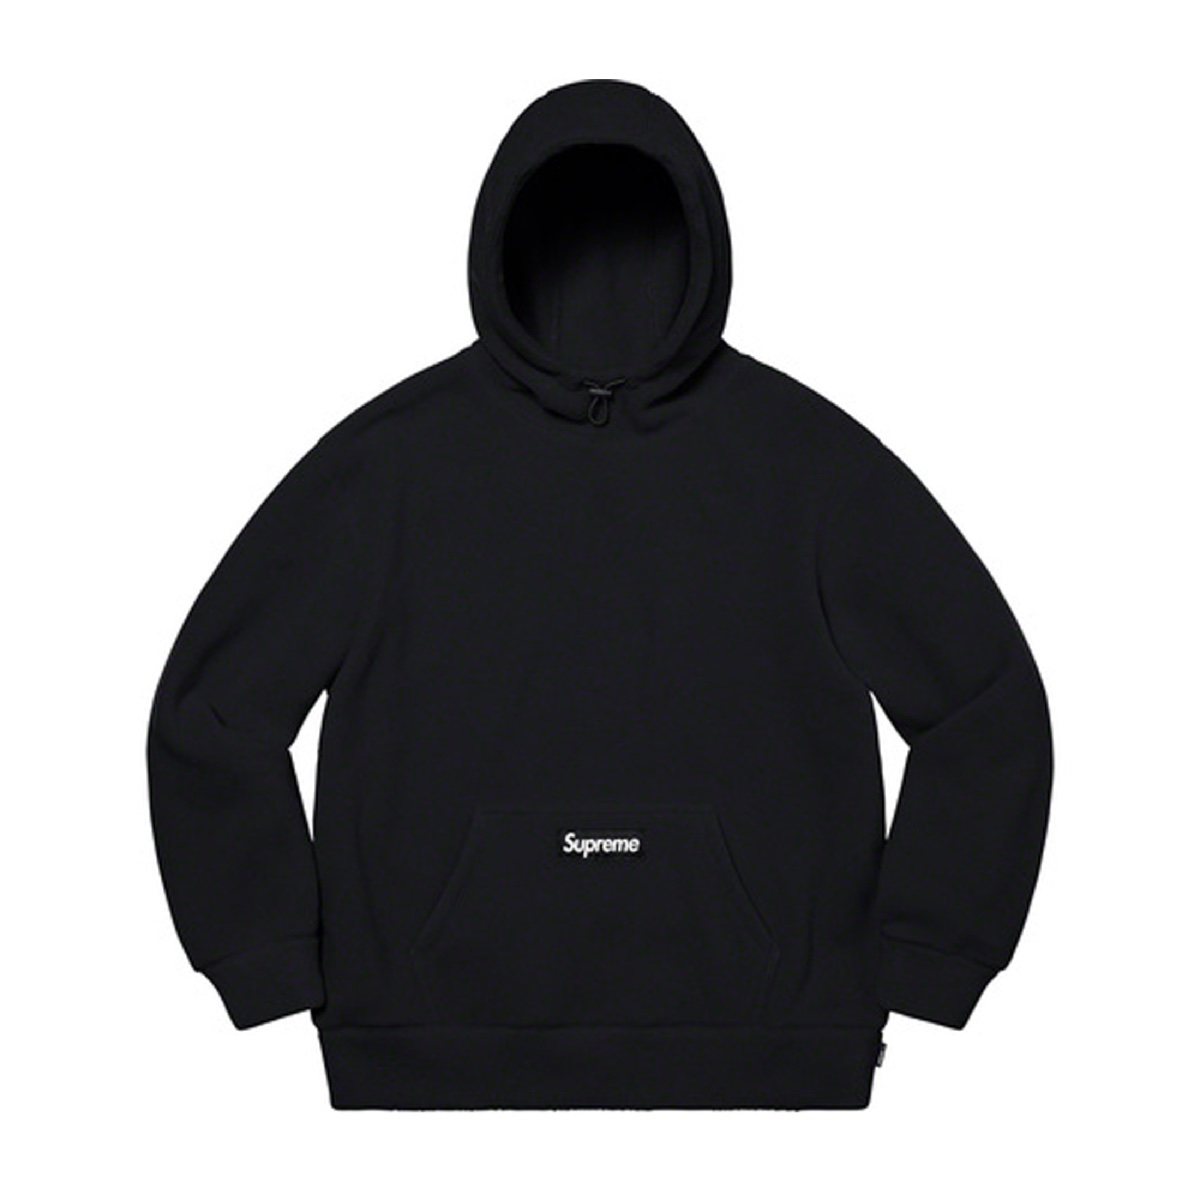 Supreme Polartec Hooded Sweatshirt Black